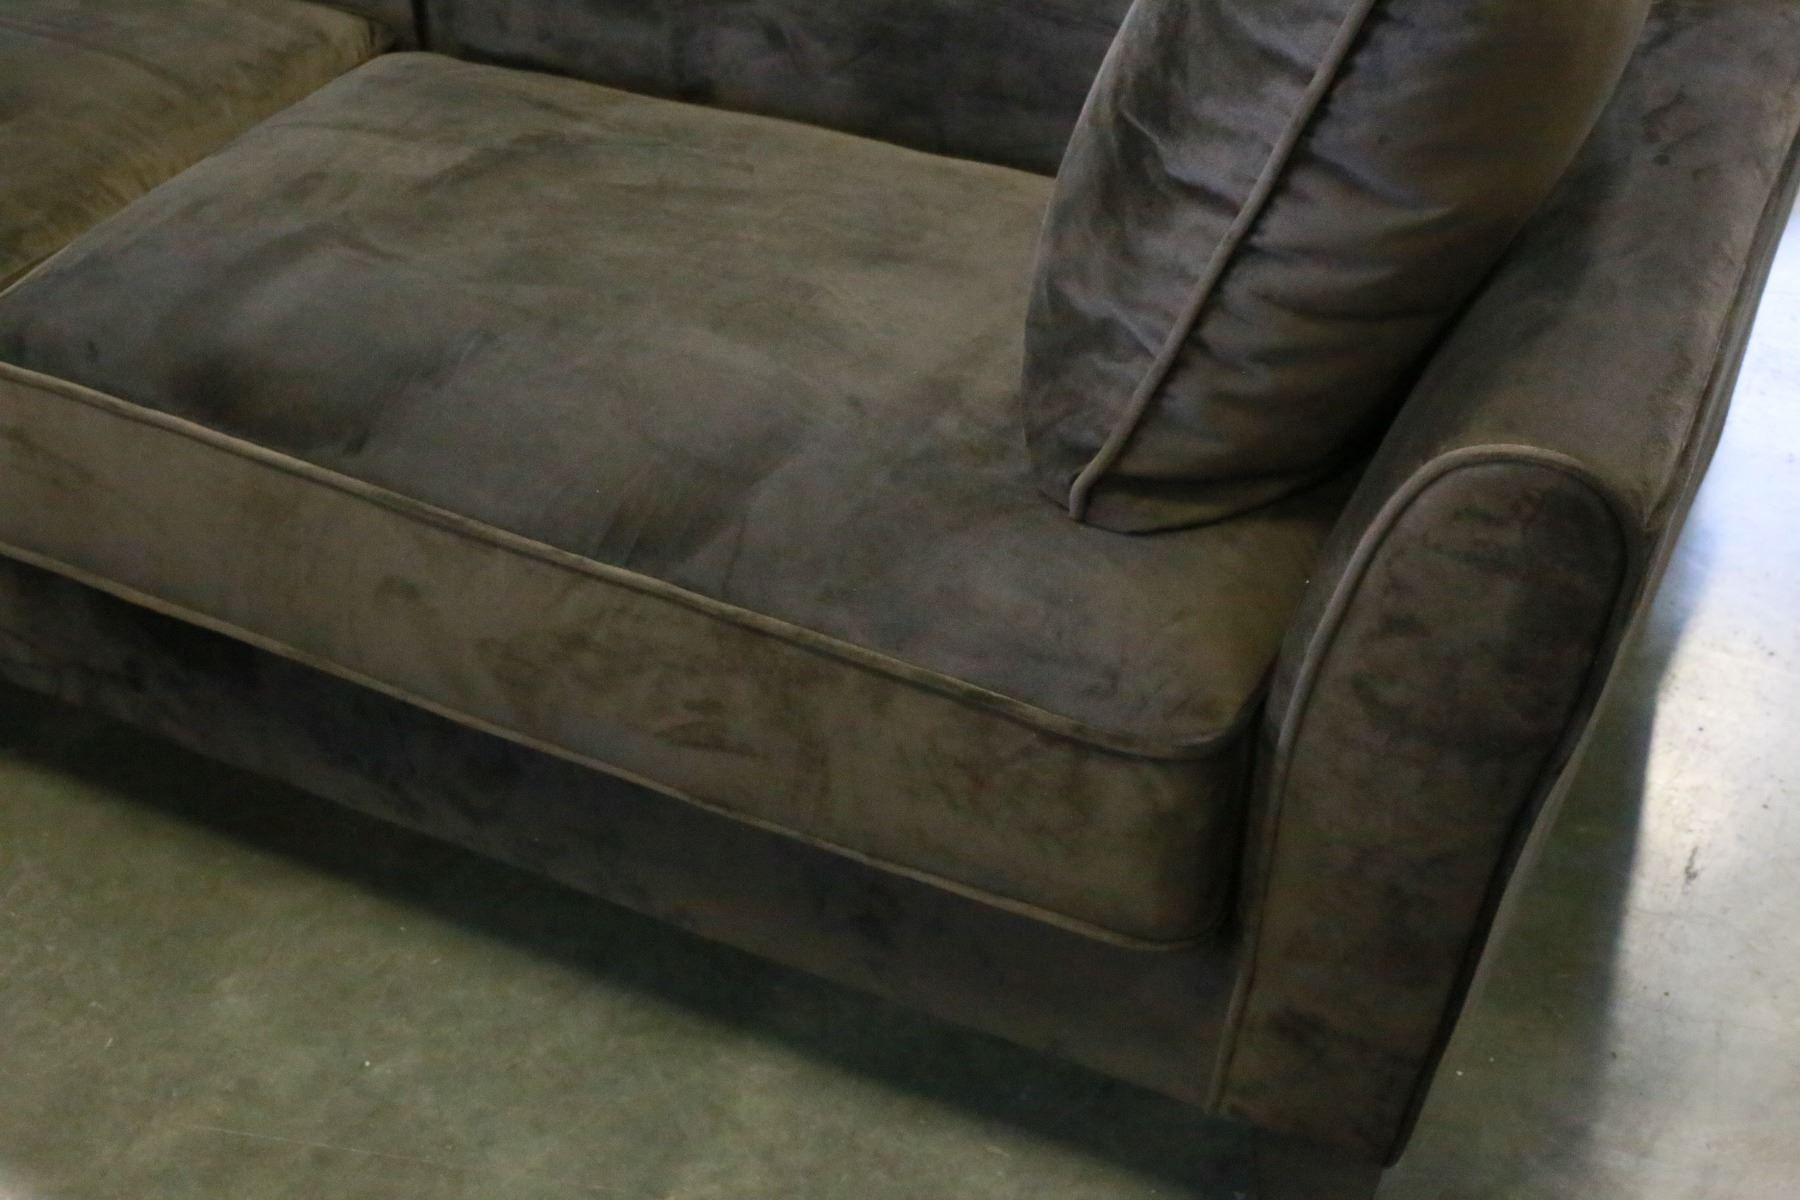 BRAND NEW ASHLEY FURNITURE BROWN MICROFIBER SOFA AND THROW